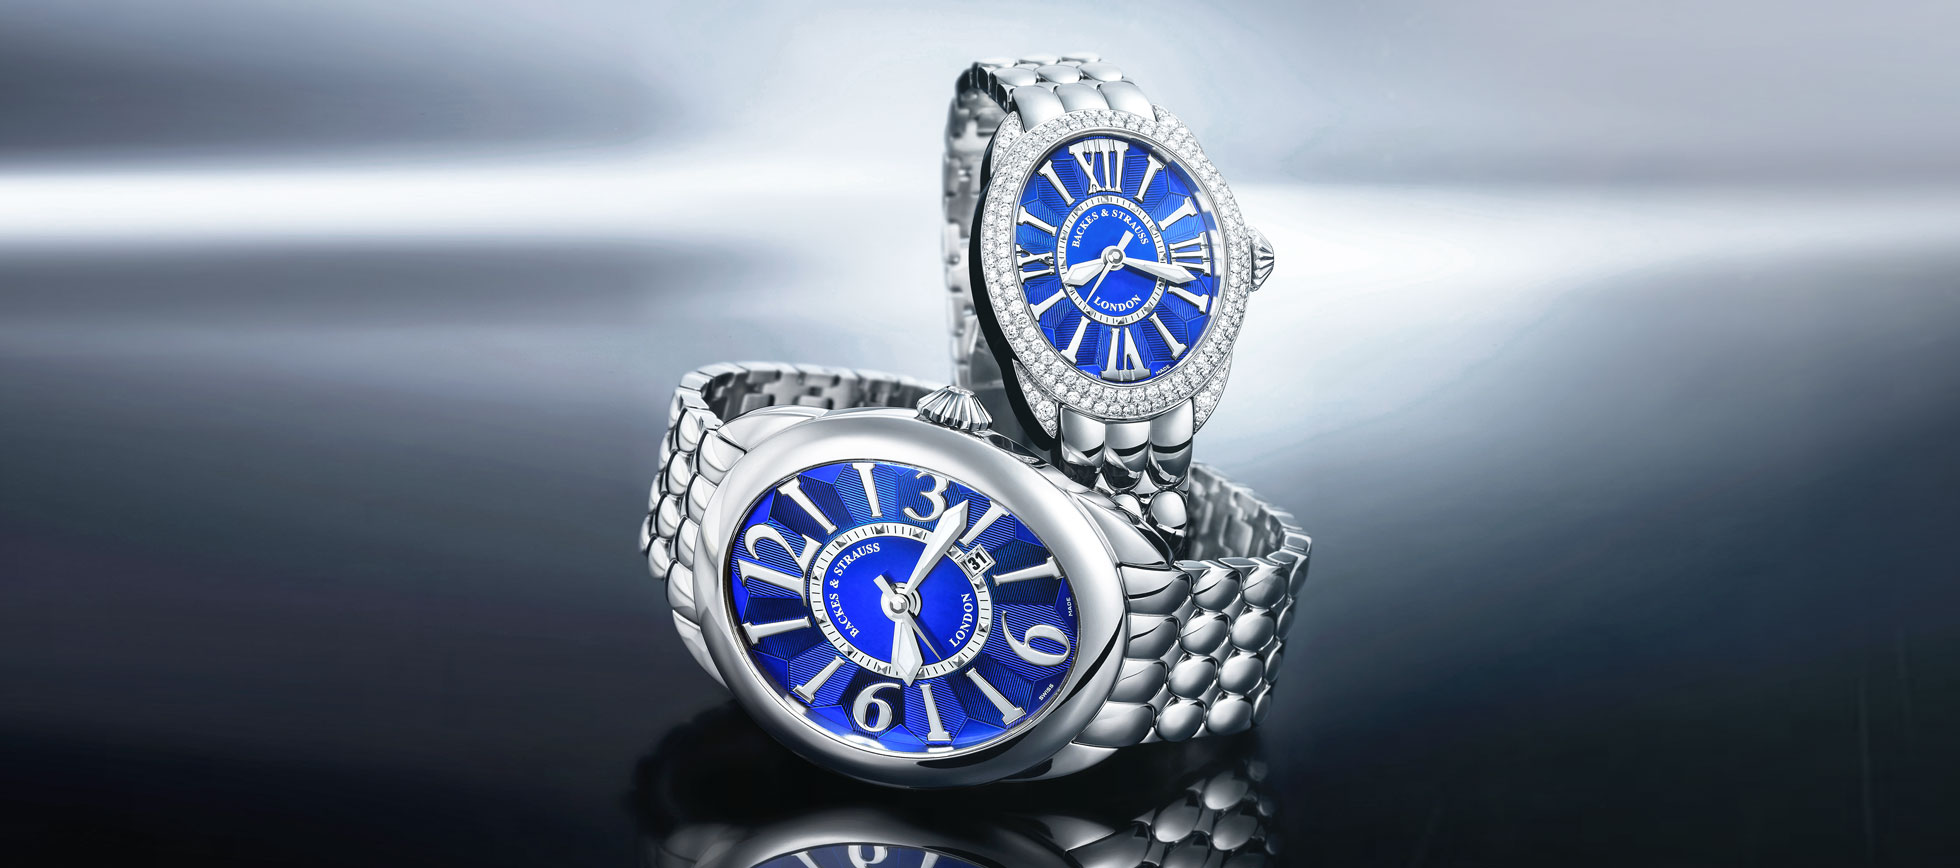 Regent Steel bespoke watch for him and her